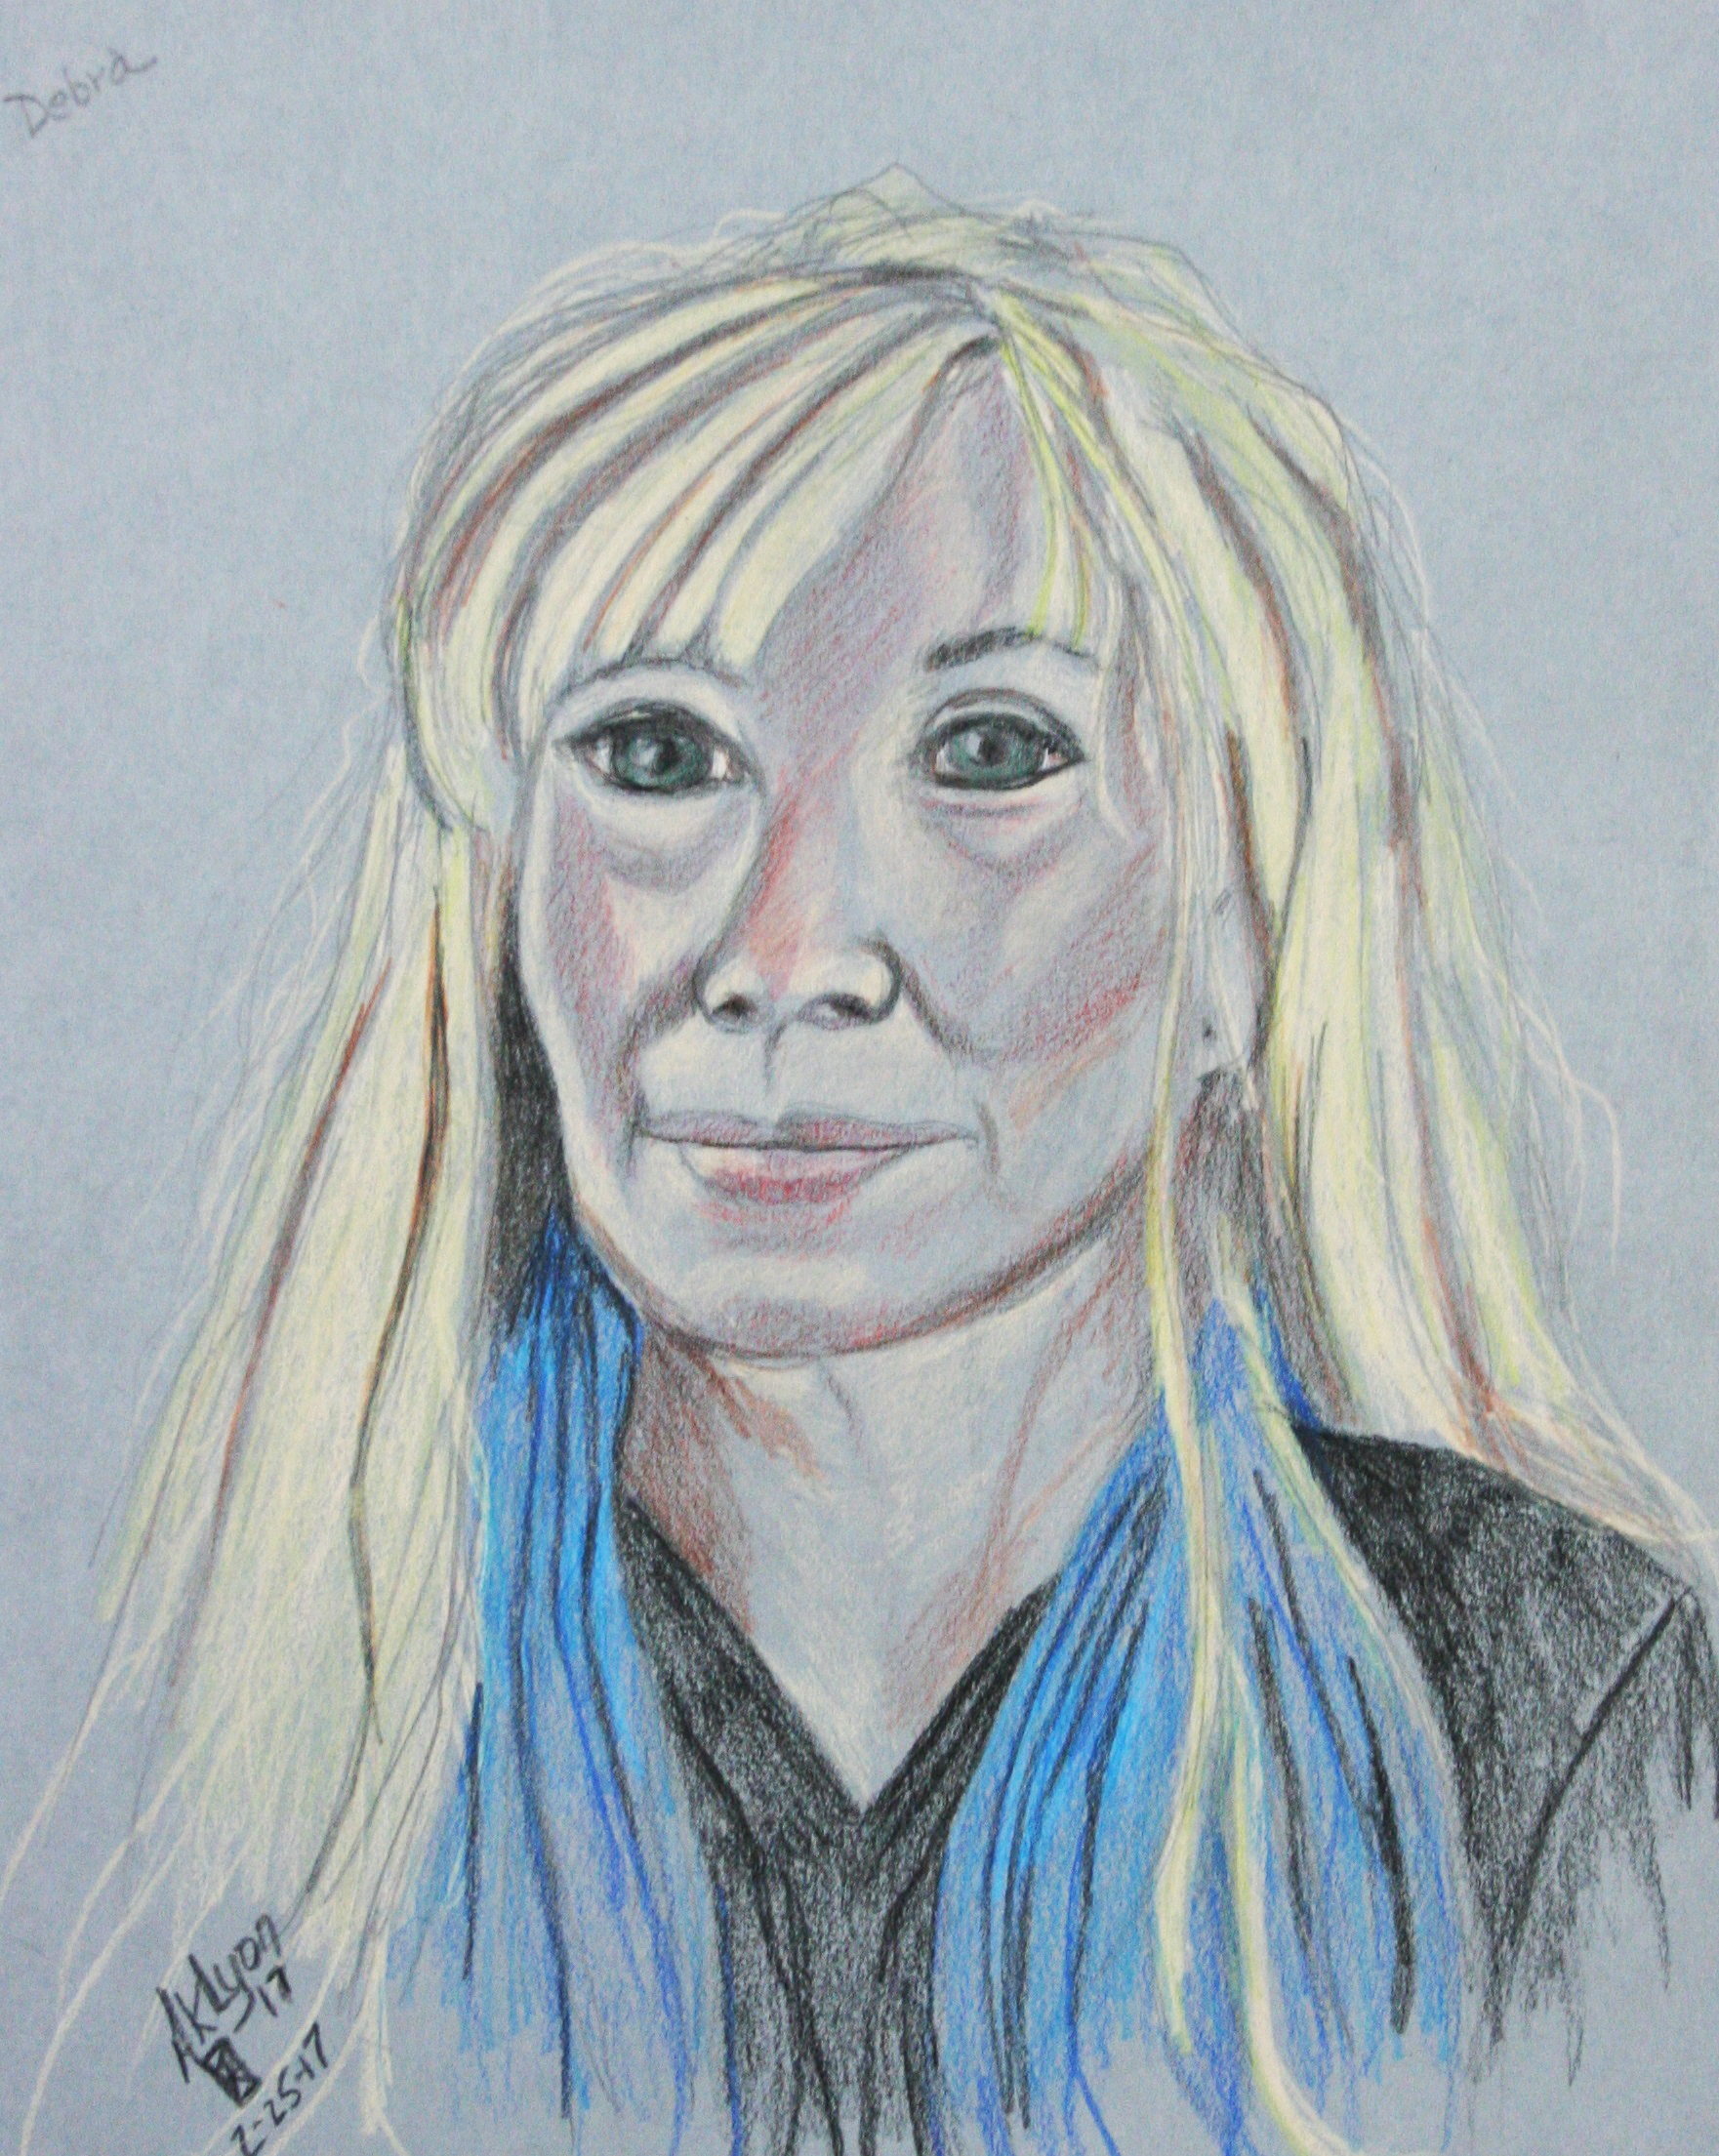 Anne Lyon did this 3-hour pastel drawing.